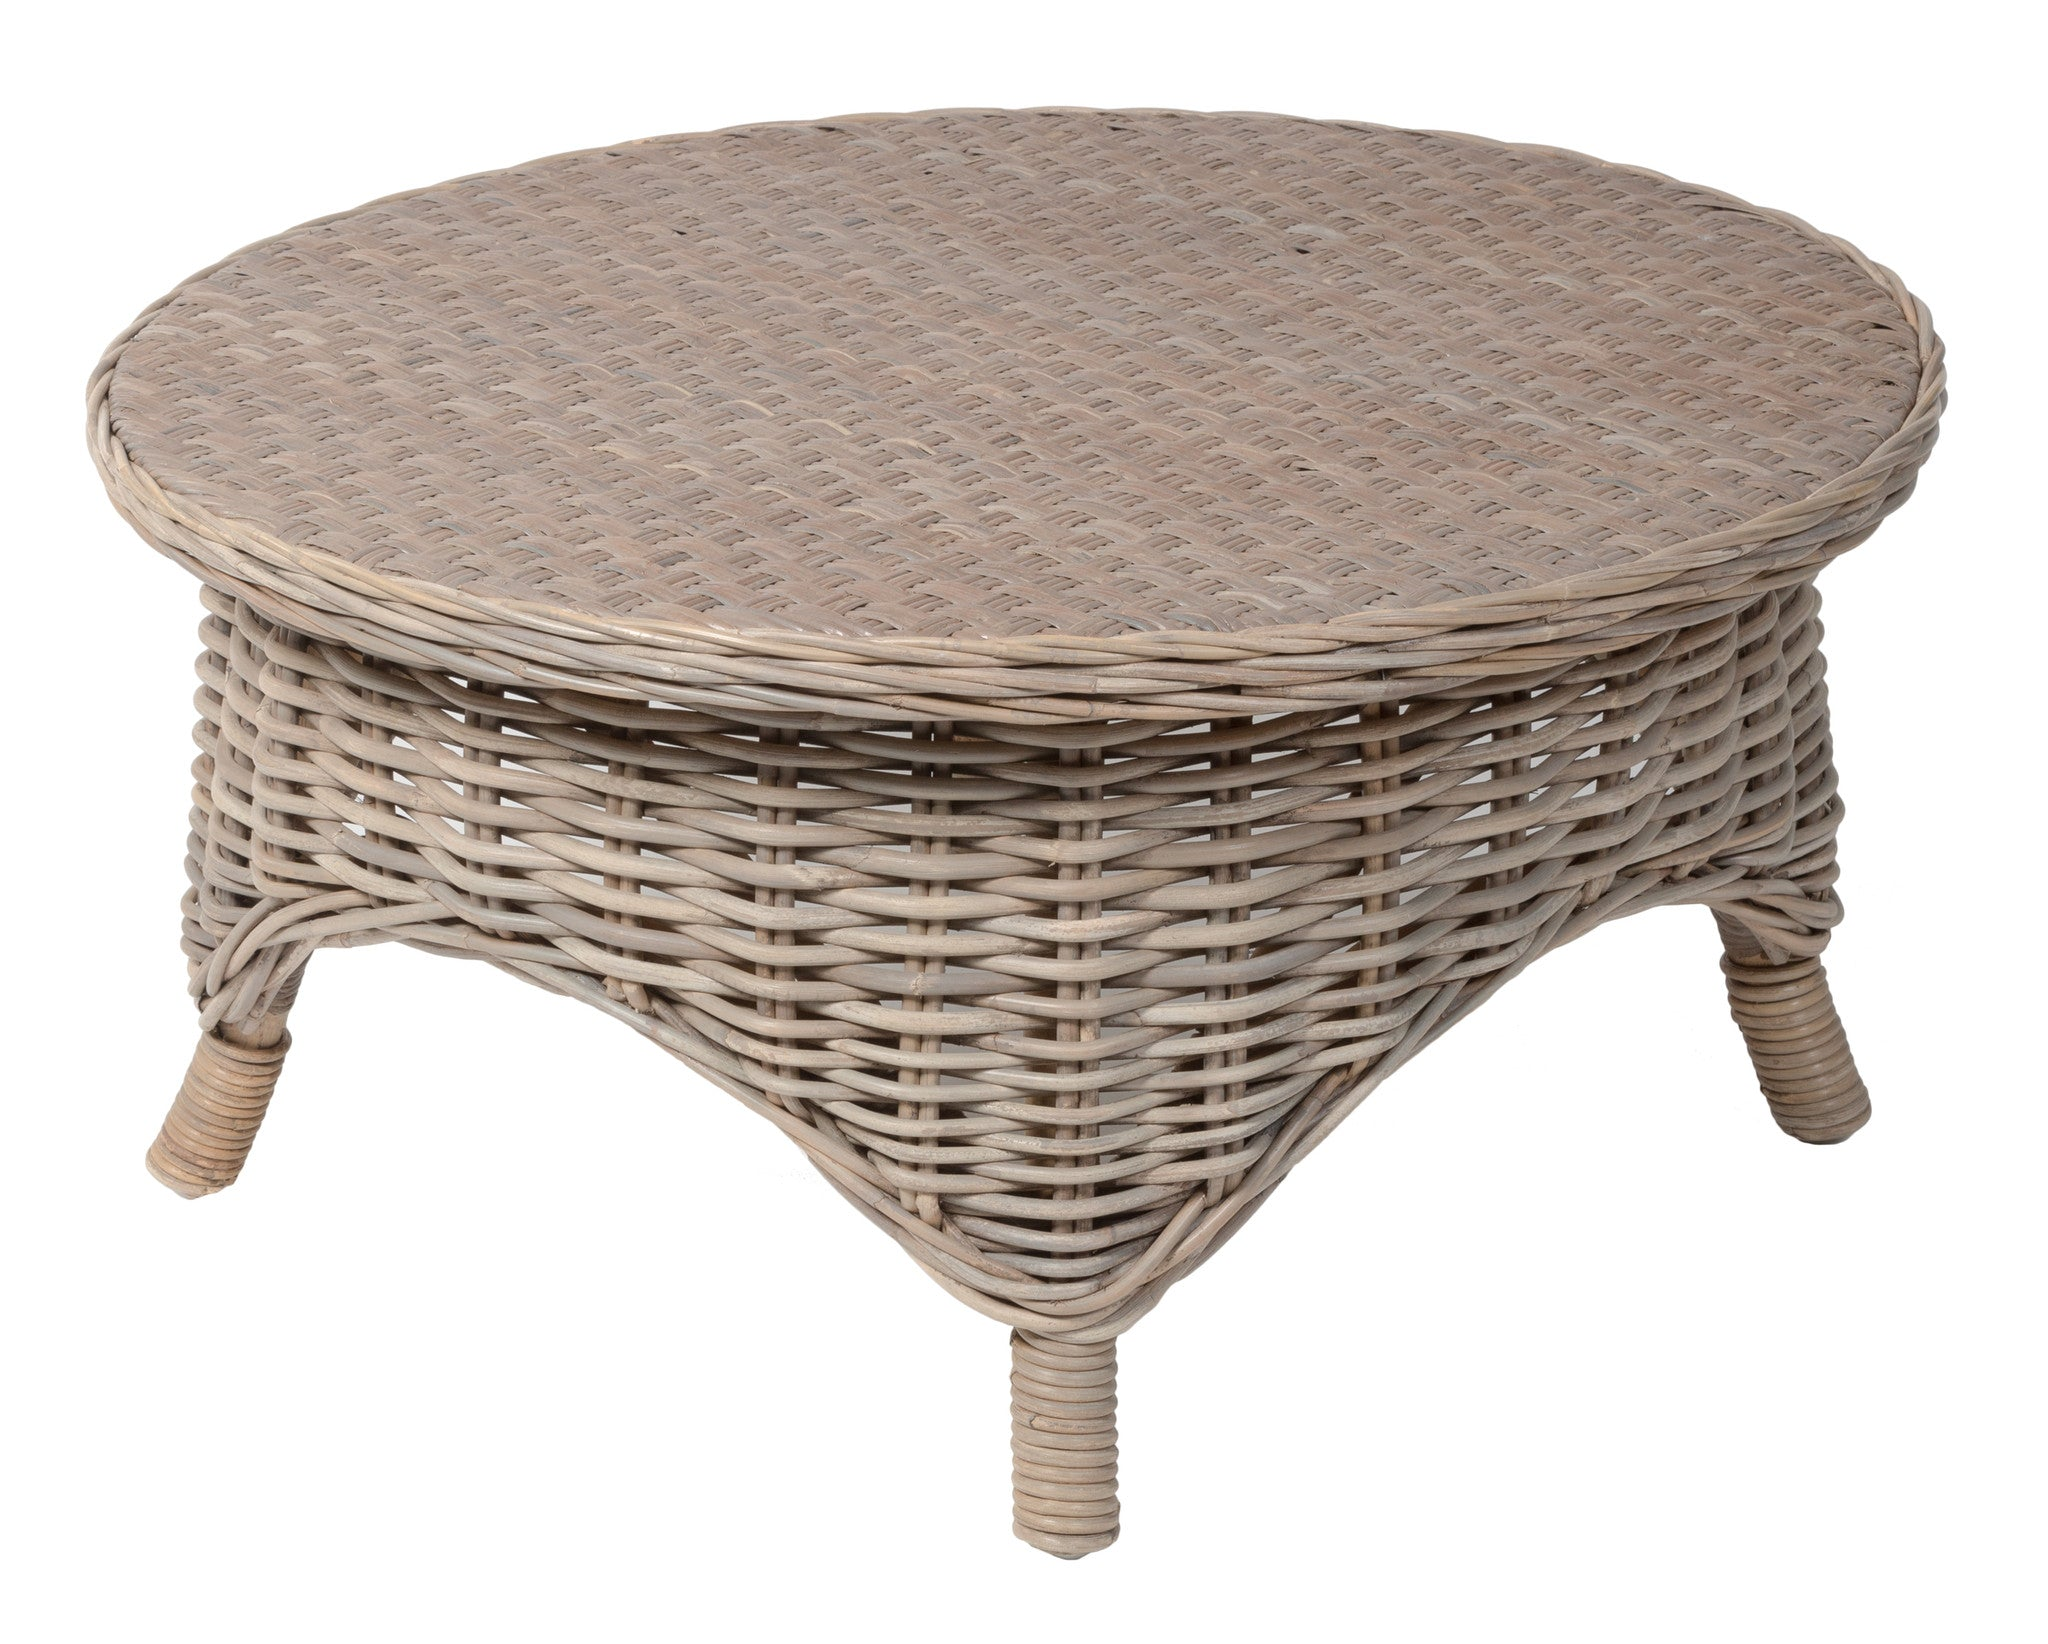 Conservatory Coffee Table Designer Wicker by Tribor